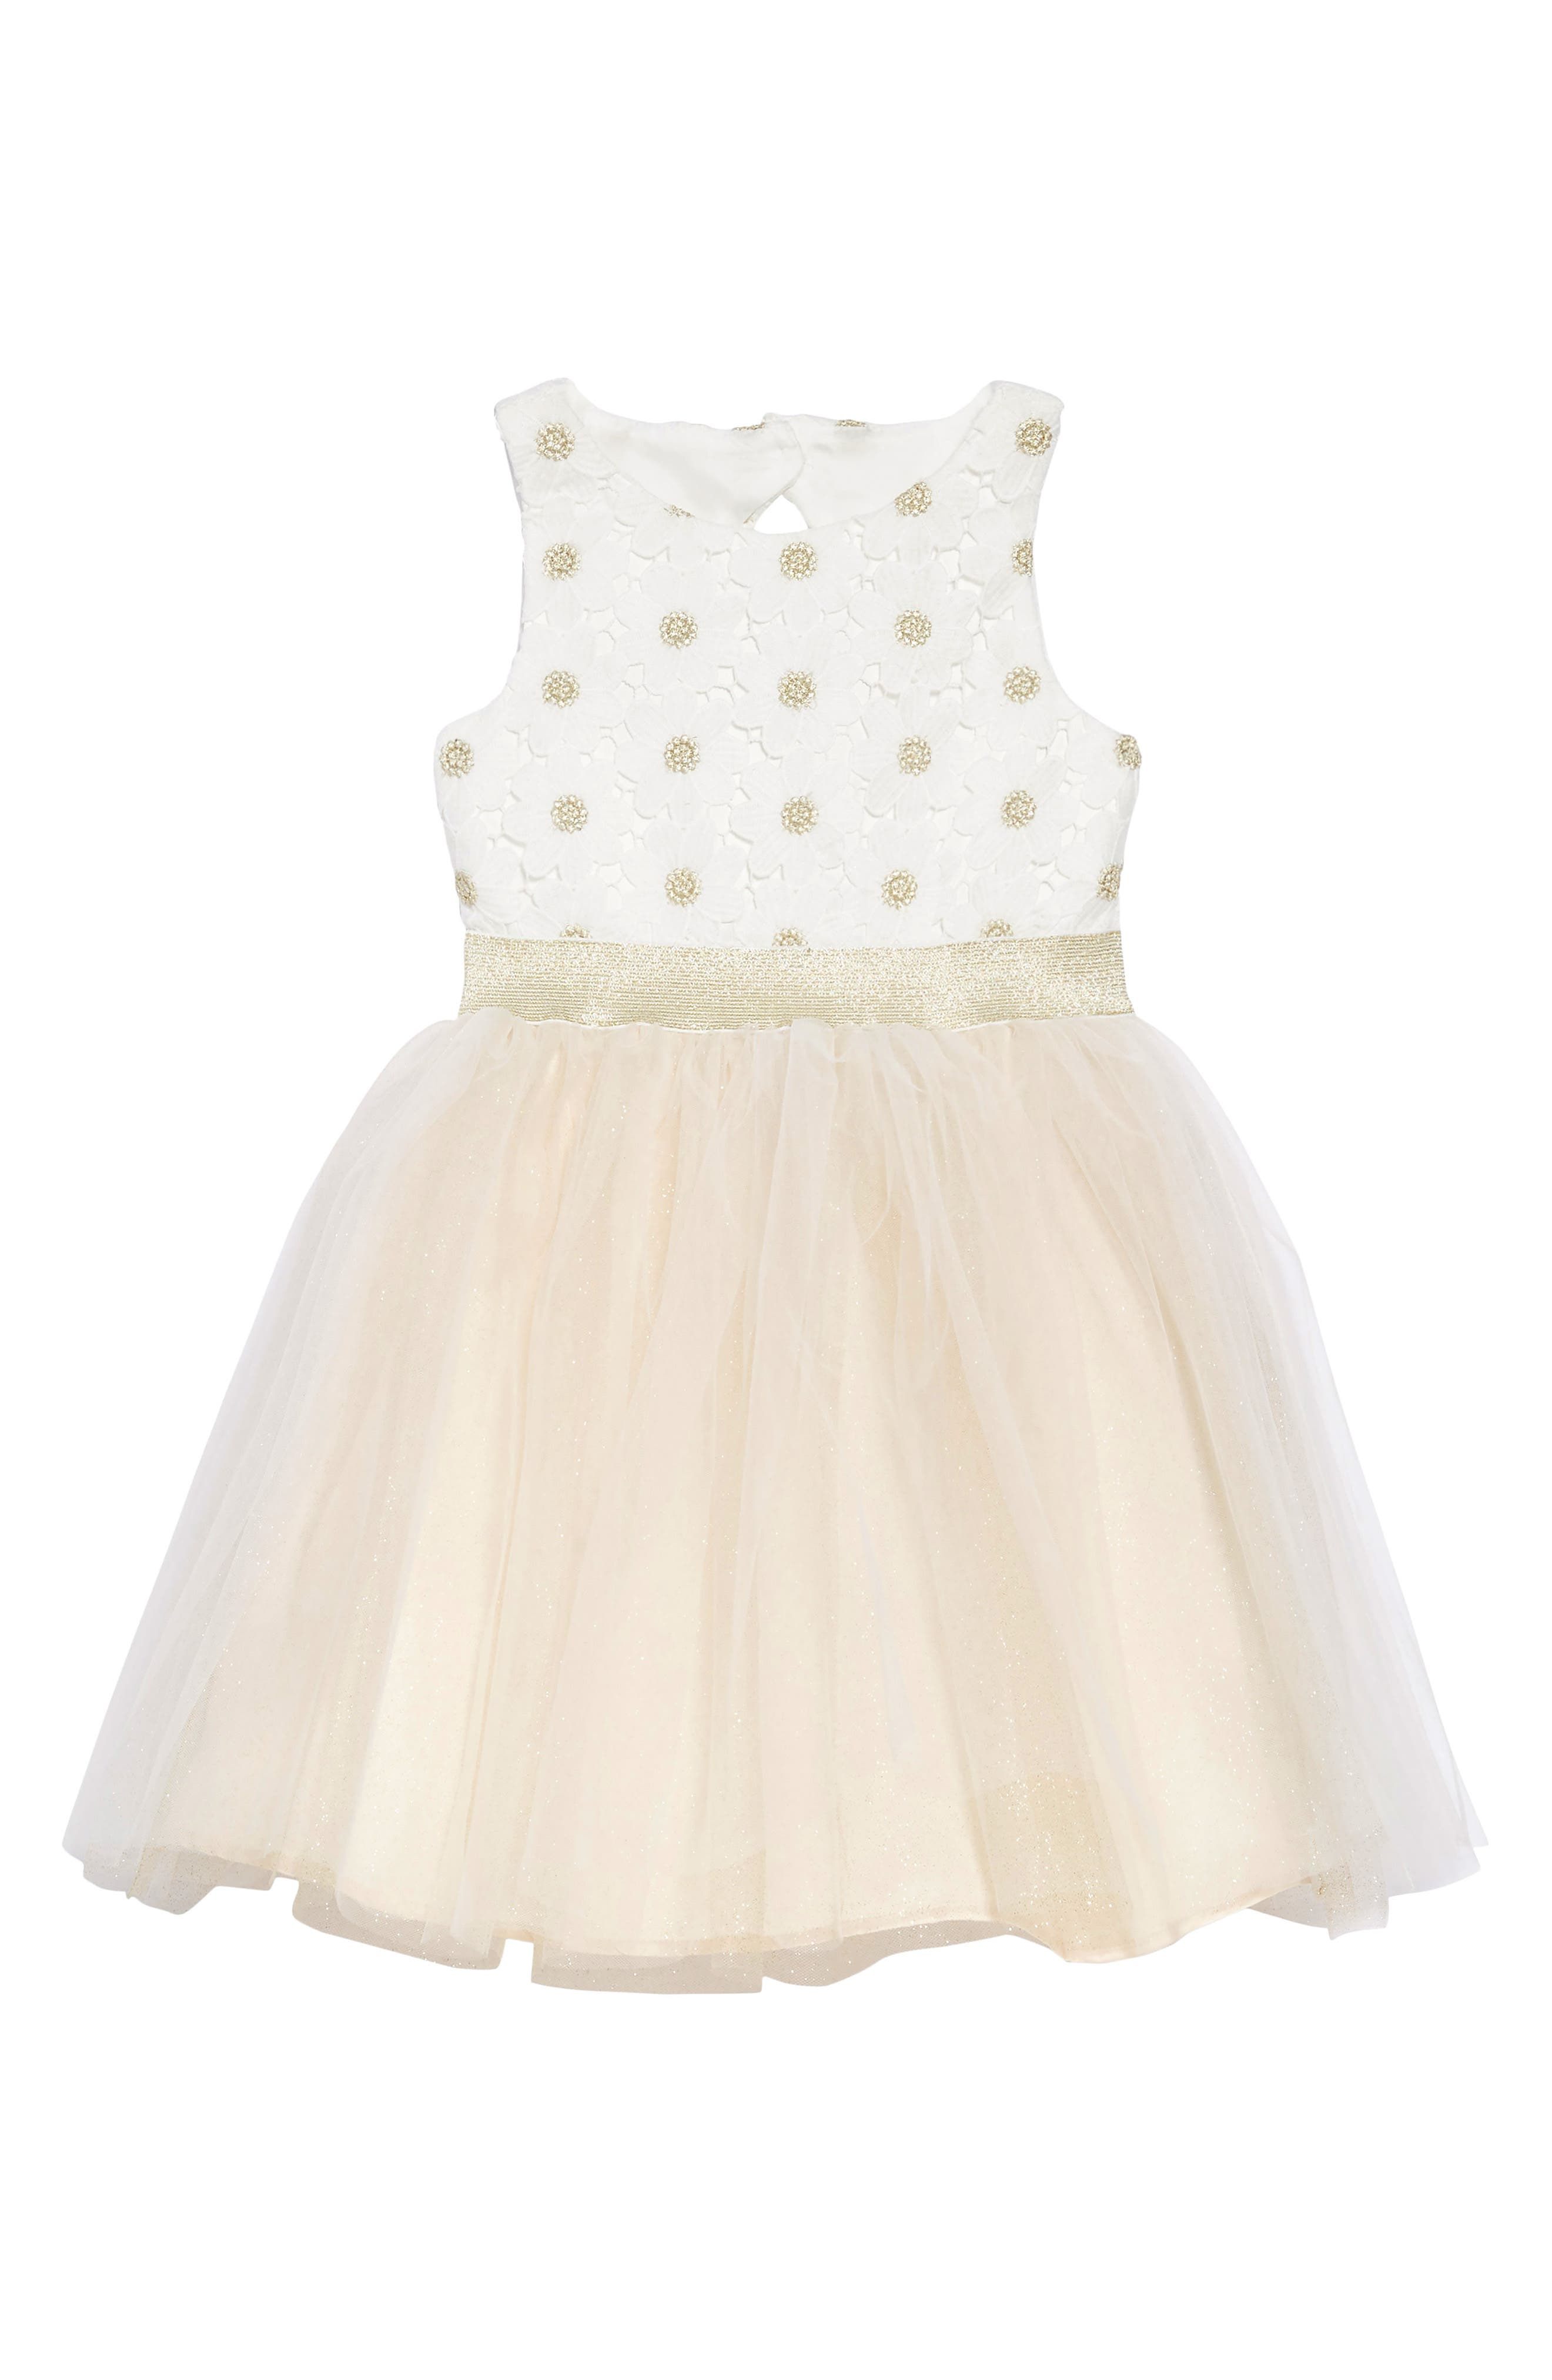 Daisy Fit & Flare Dress,                             Main thumbnail 1, color,                             IVORY/ CHAMPAGNE